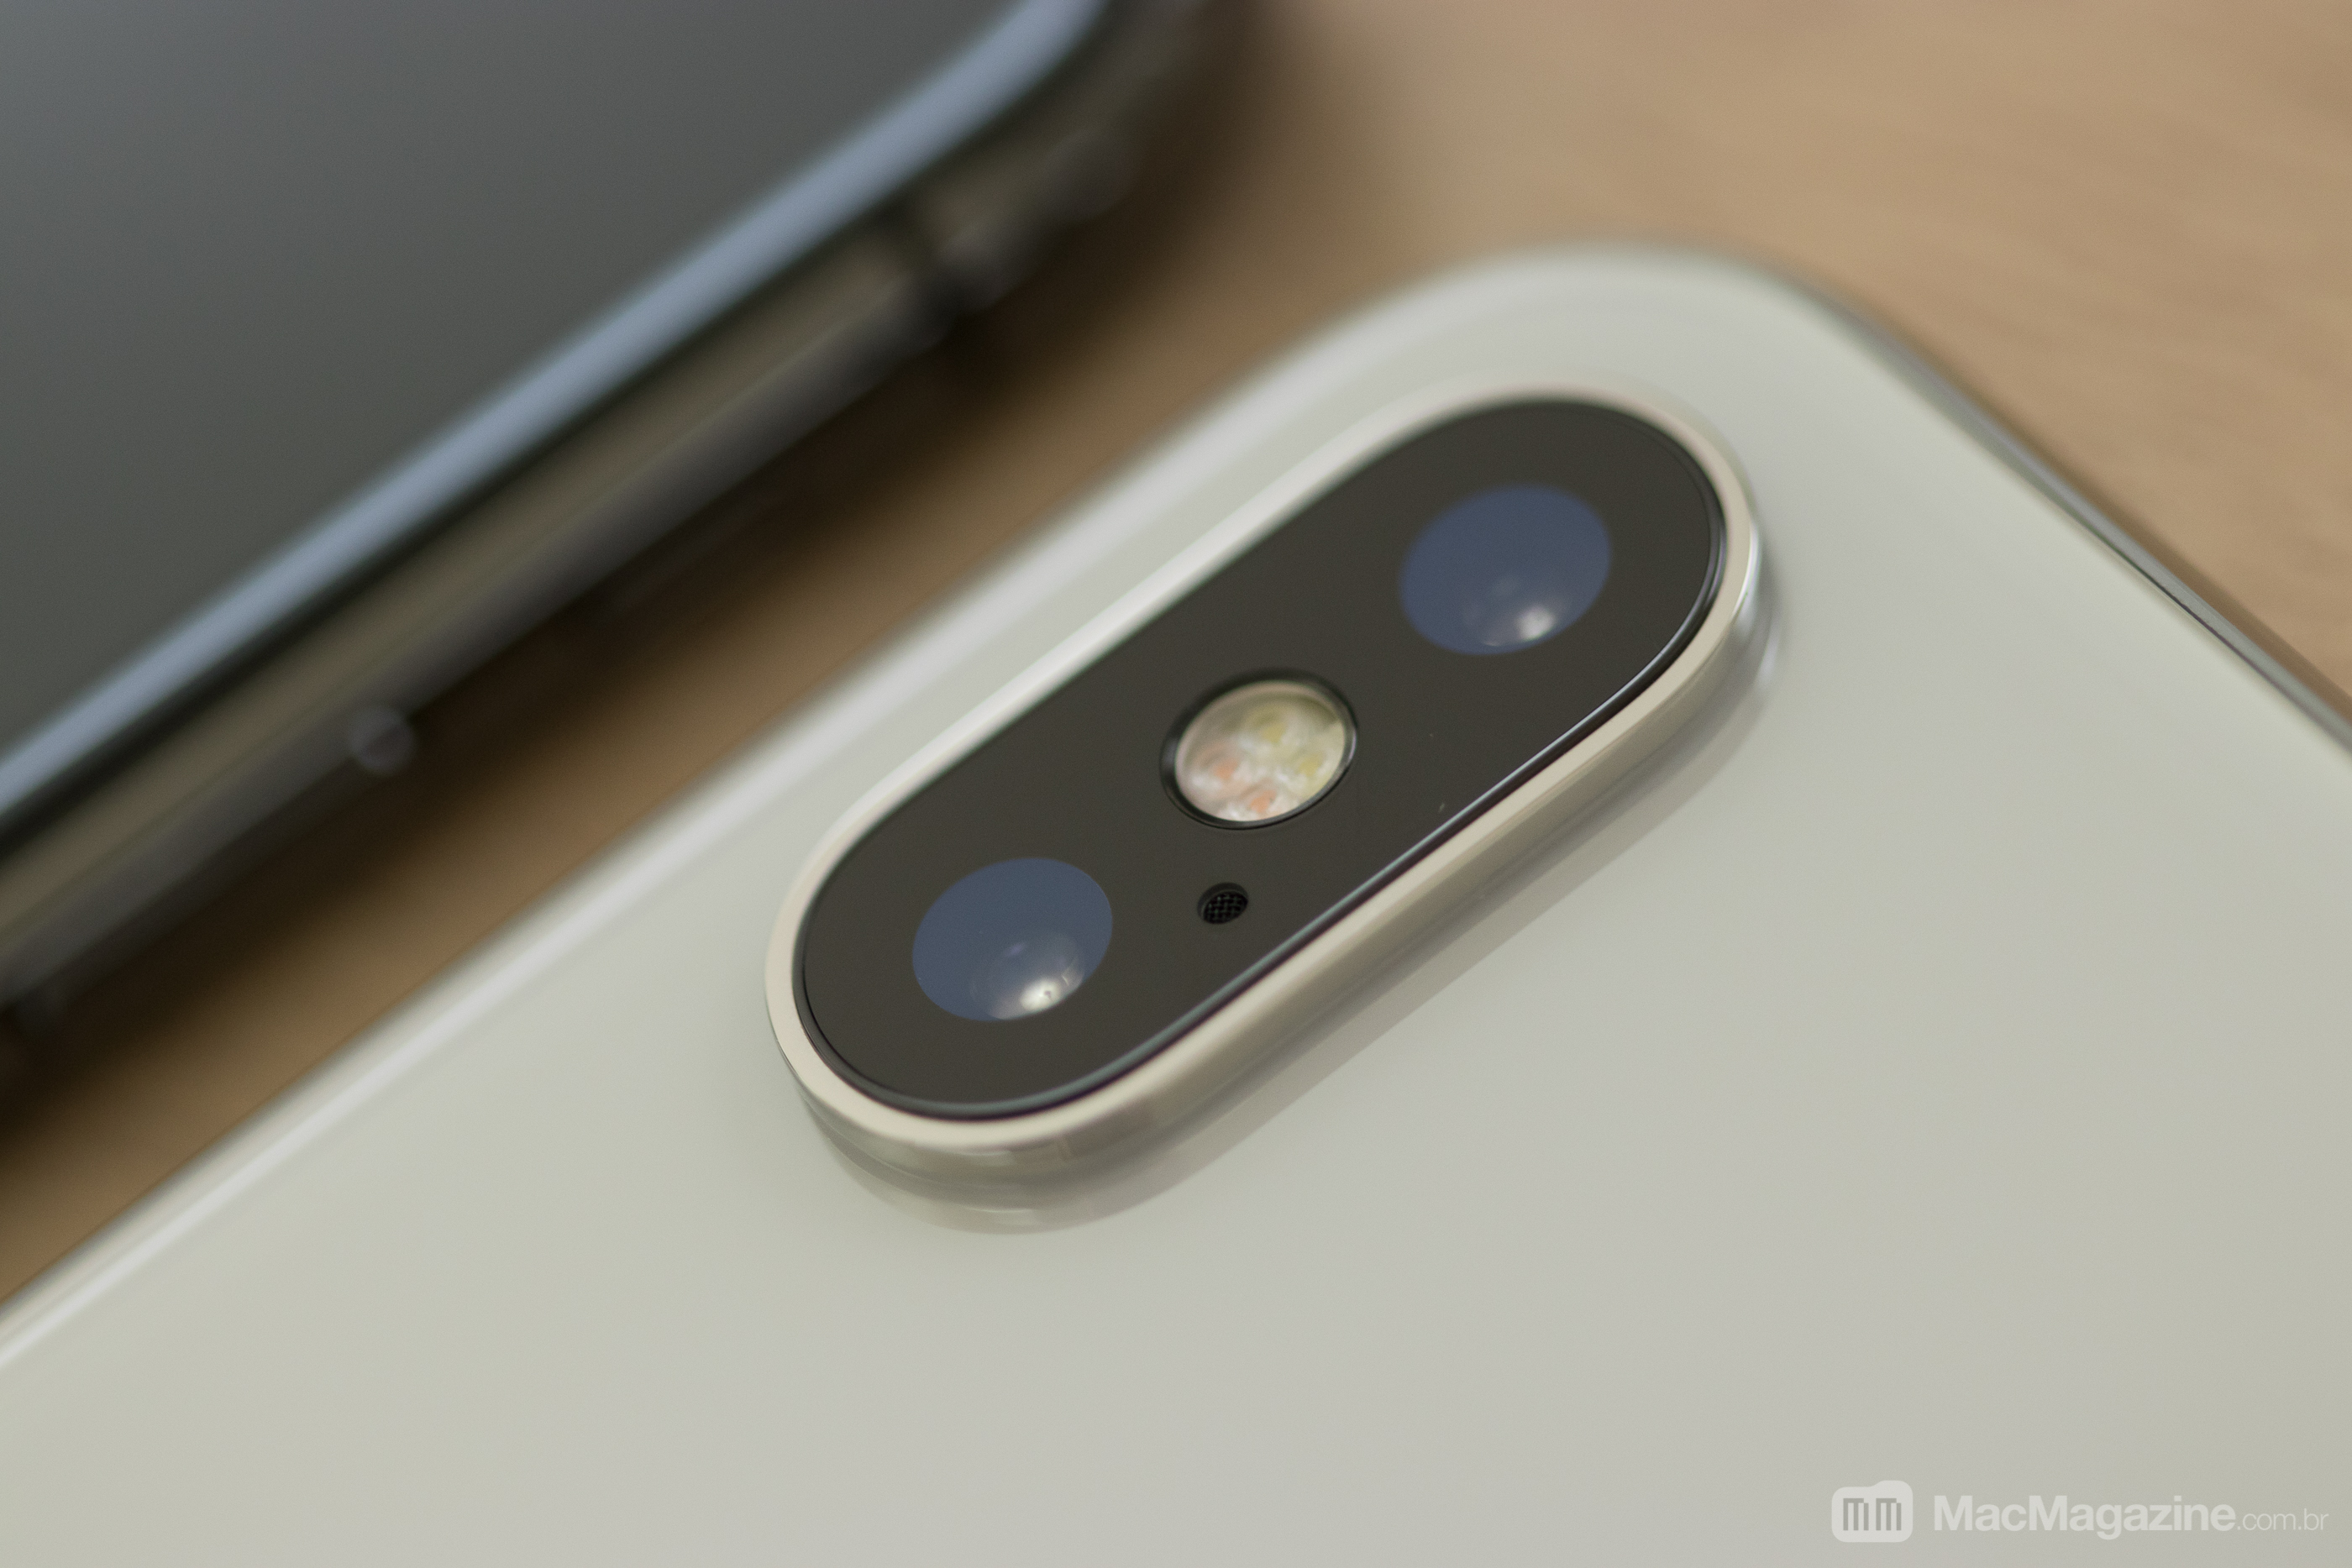 Galeria de fotos do iPhone X (by MacMagazine)